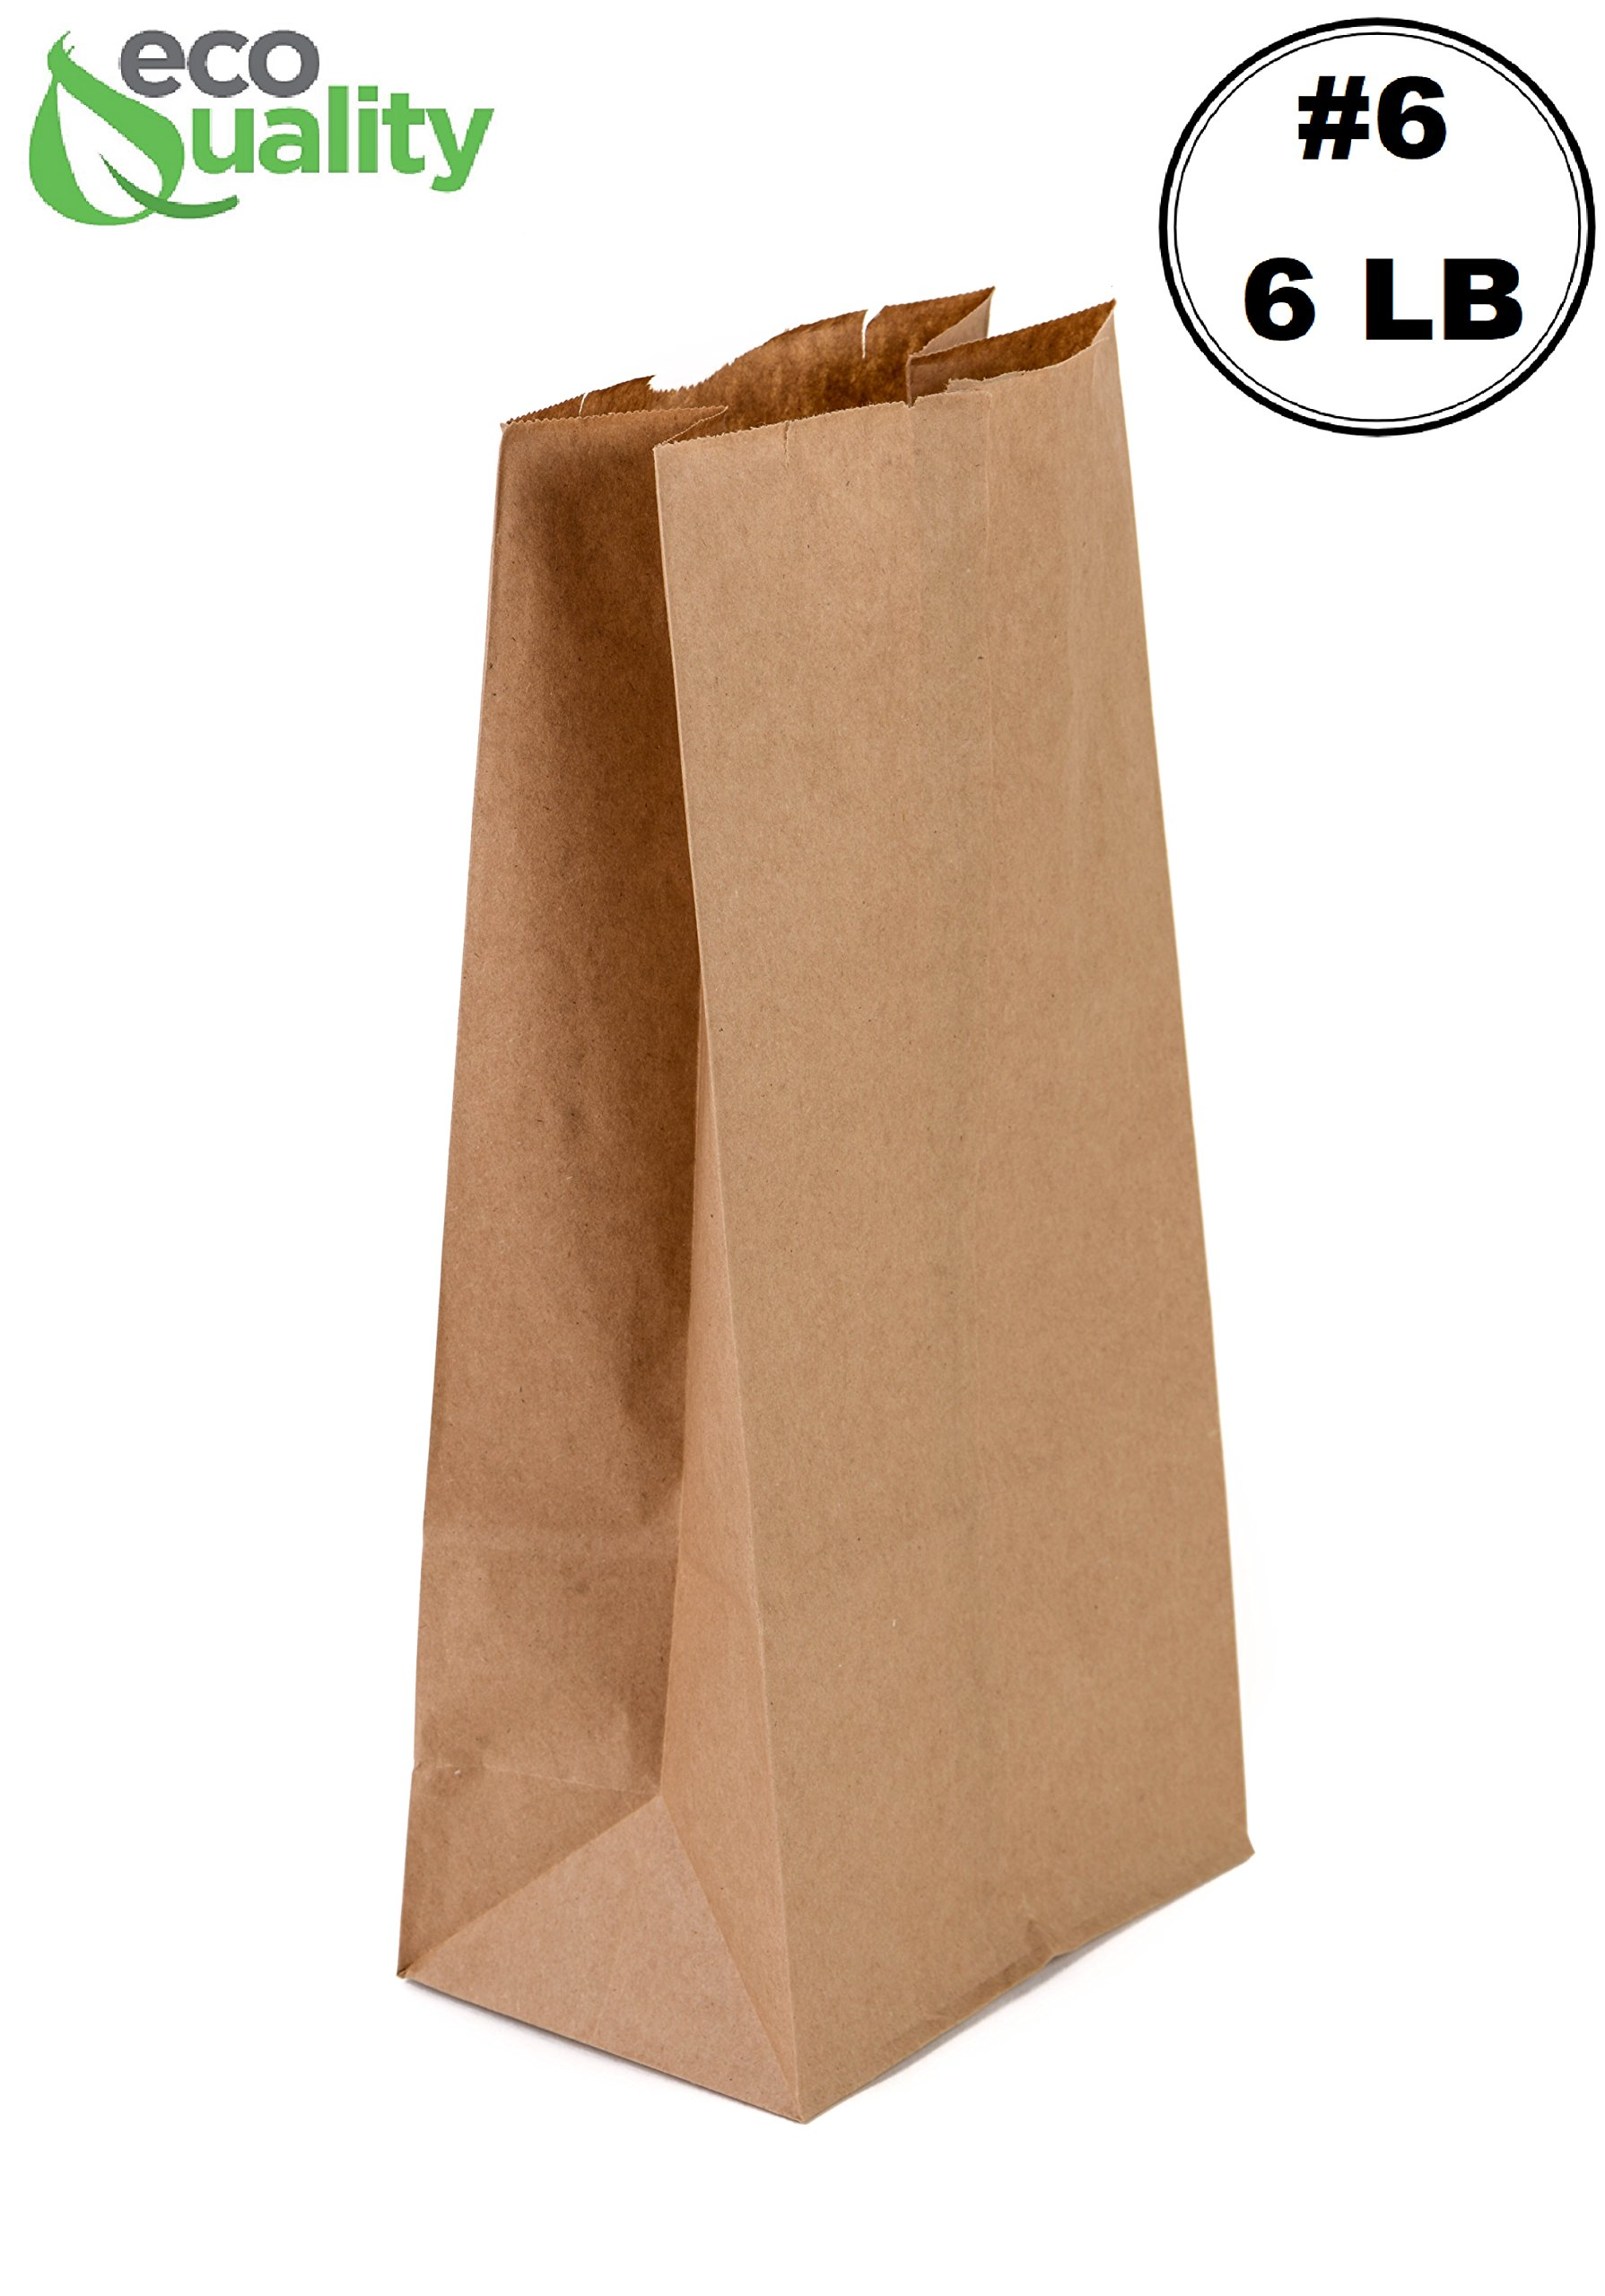 EcoQuality 500 Brown Kraft Paper Bag (6 lb) Small - Paper Lunch Bags, Small Snacks, Gift Bags, Grocery, Merchandise, Party Bags (11 x 6 x 3.5) (6 Pound Capacity)